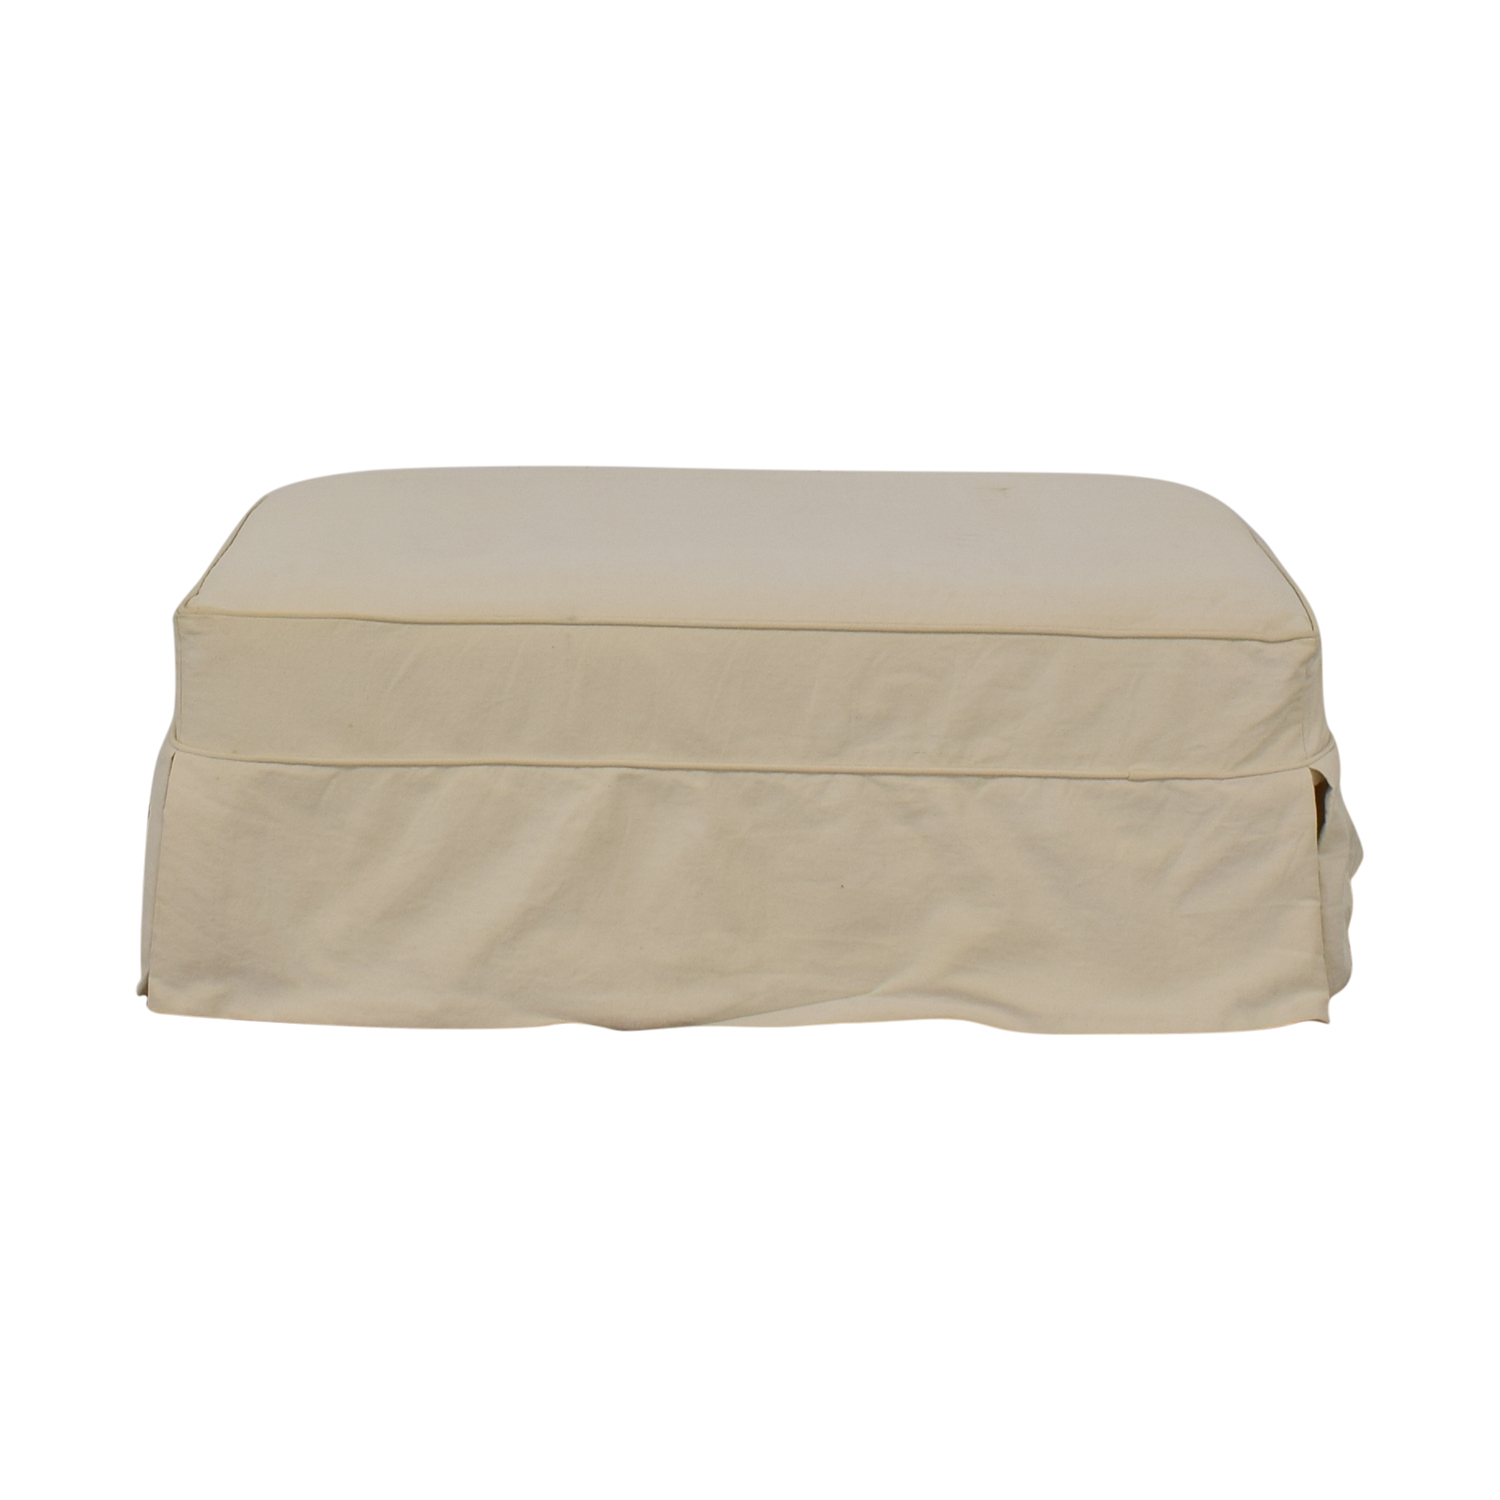 Slipcovered Ottoman Off White